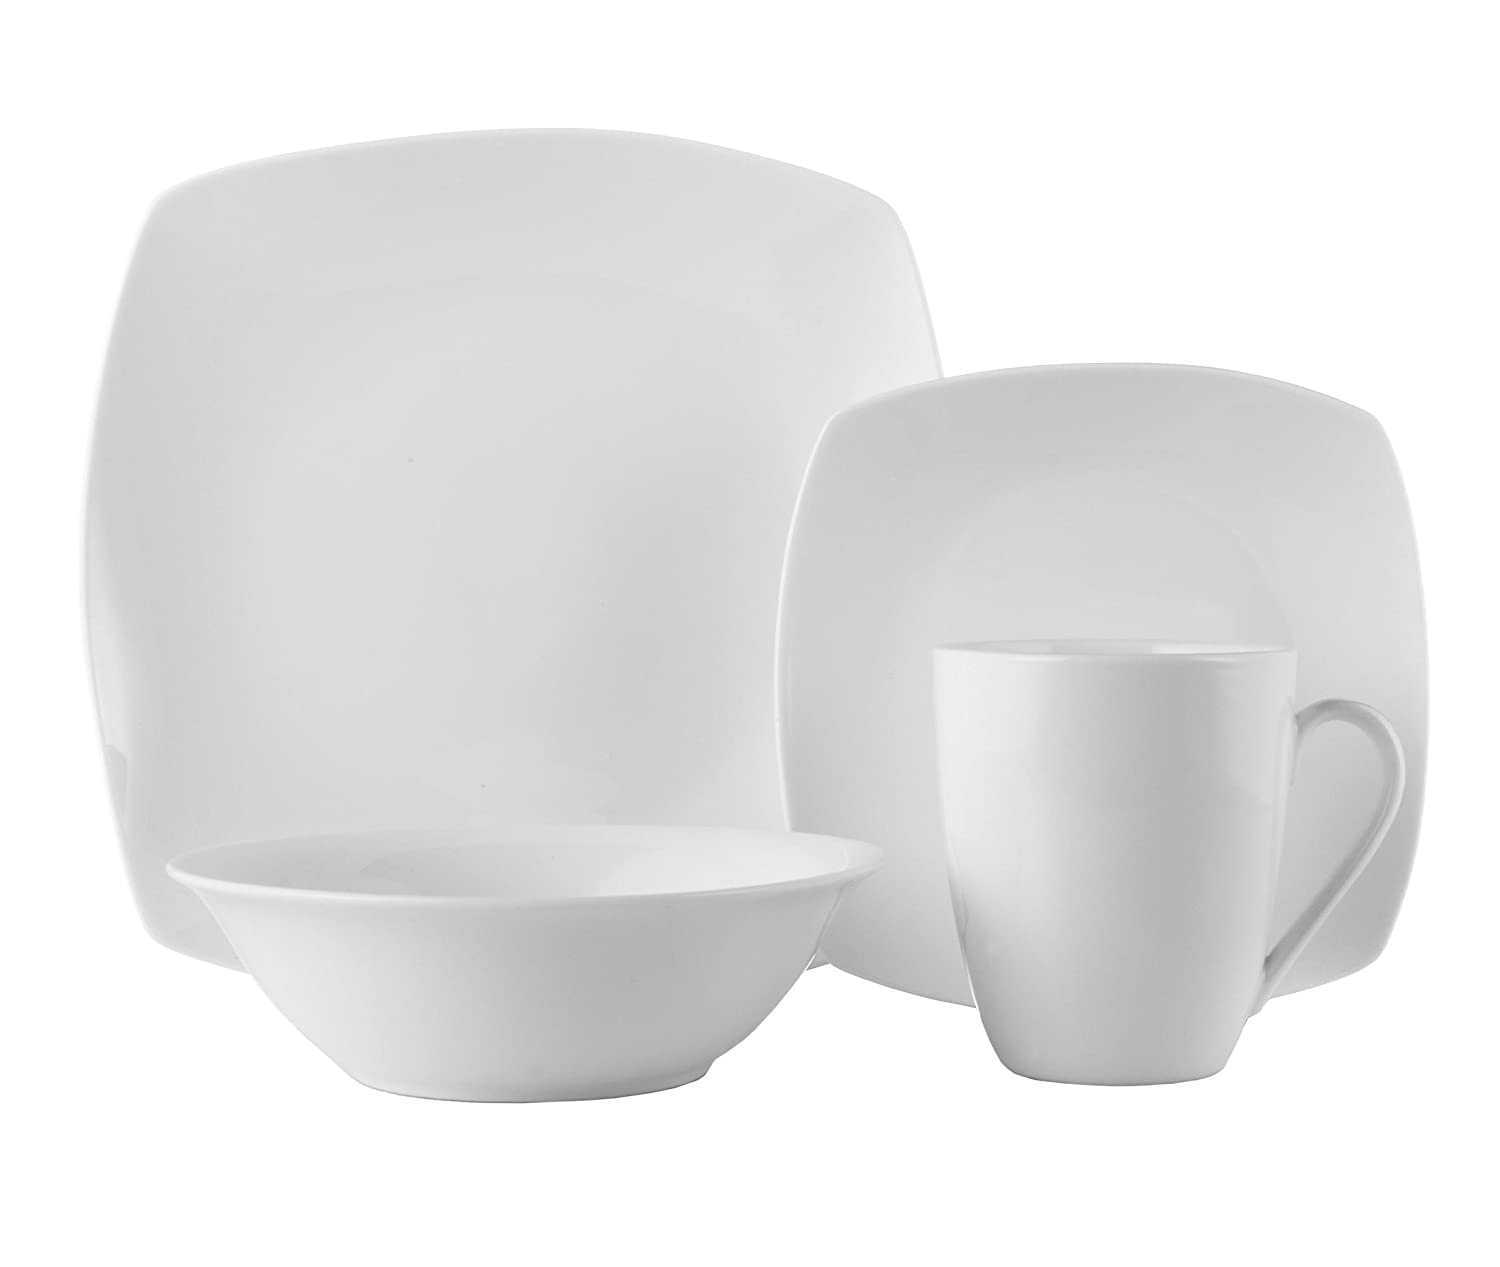 ROSCHER Dinnerware Dish Set (16-Piece) White, Ceramic Soft Square Dishes | Dinner and Salad Plates, Appetizer Bowls, Drink Mugs | Modern Kitchen Style | Dishwasher Safe 80259